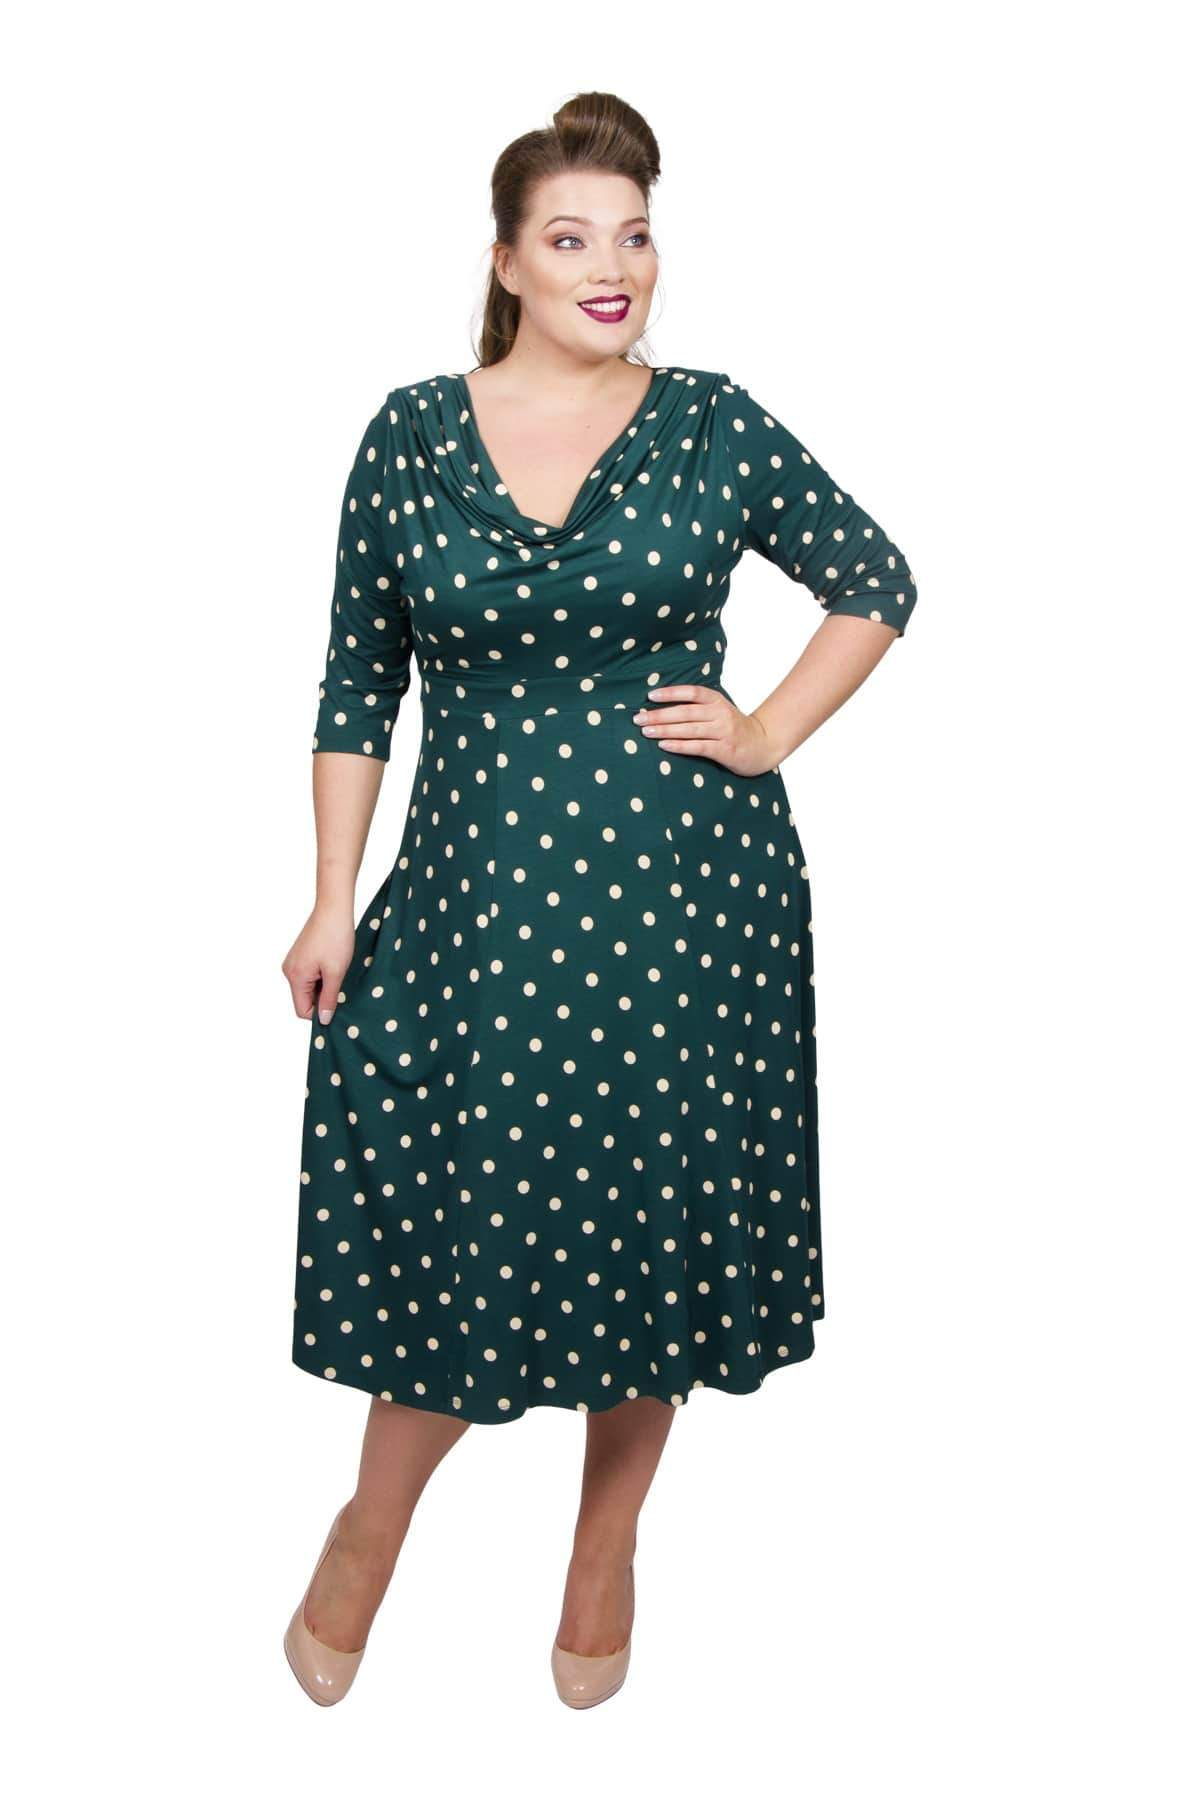 1940s Fashion Advice for Short Women Lollidot Cowl Neck 40s Dress - GreenWhite  12 £60.00 AT vintagedancer.com